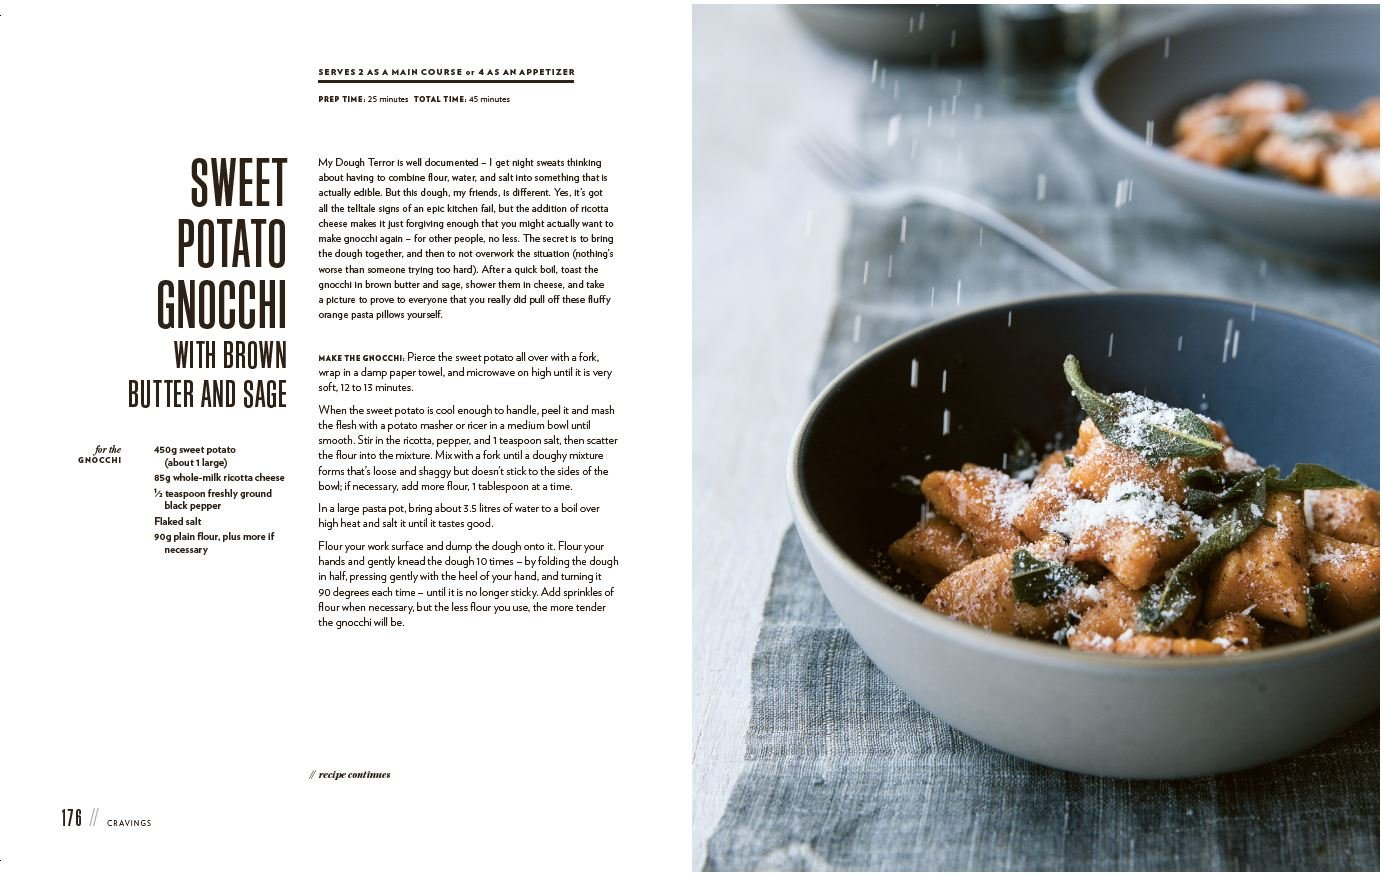 Sweet Potato Gnocchi With Brown Butter And Sage Tiny Tales